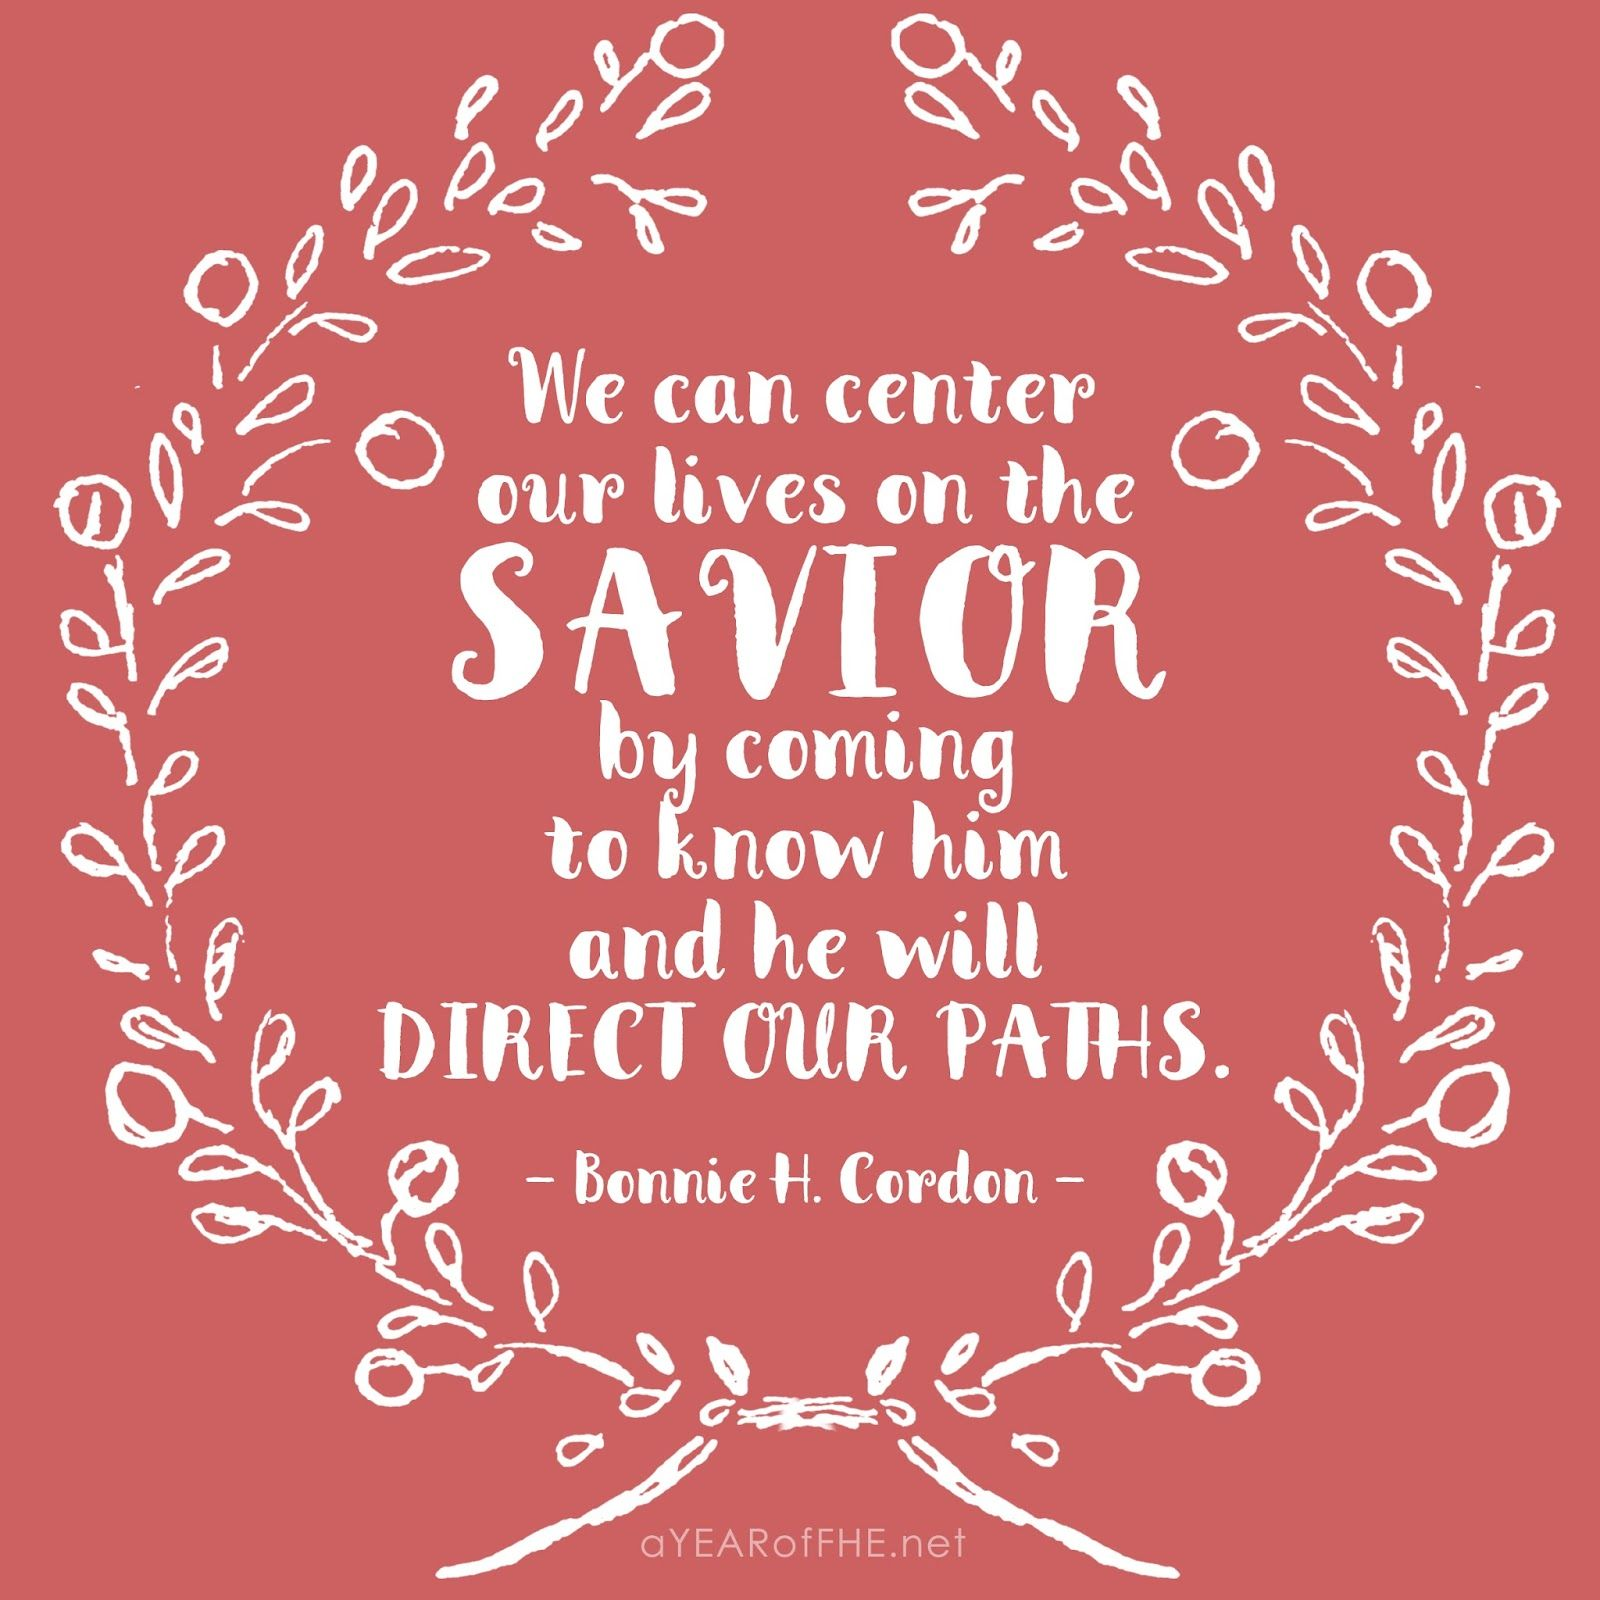 Direct General Quote A Year Of Fhe  Quote From The Lds General Conference Women's